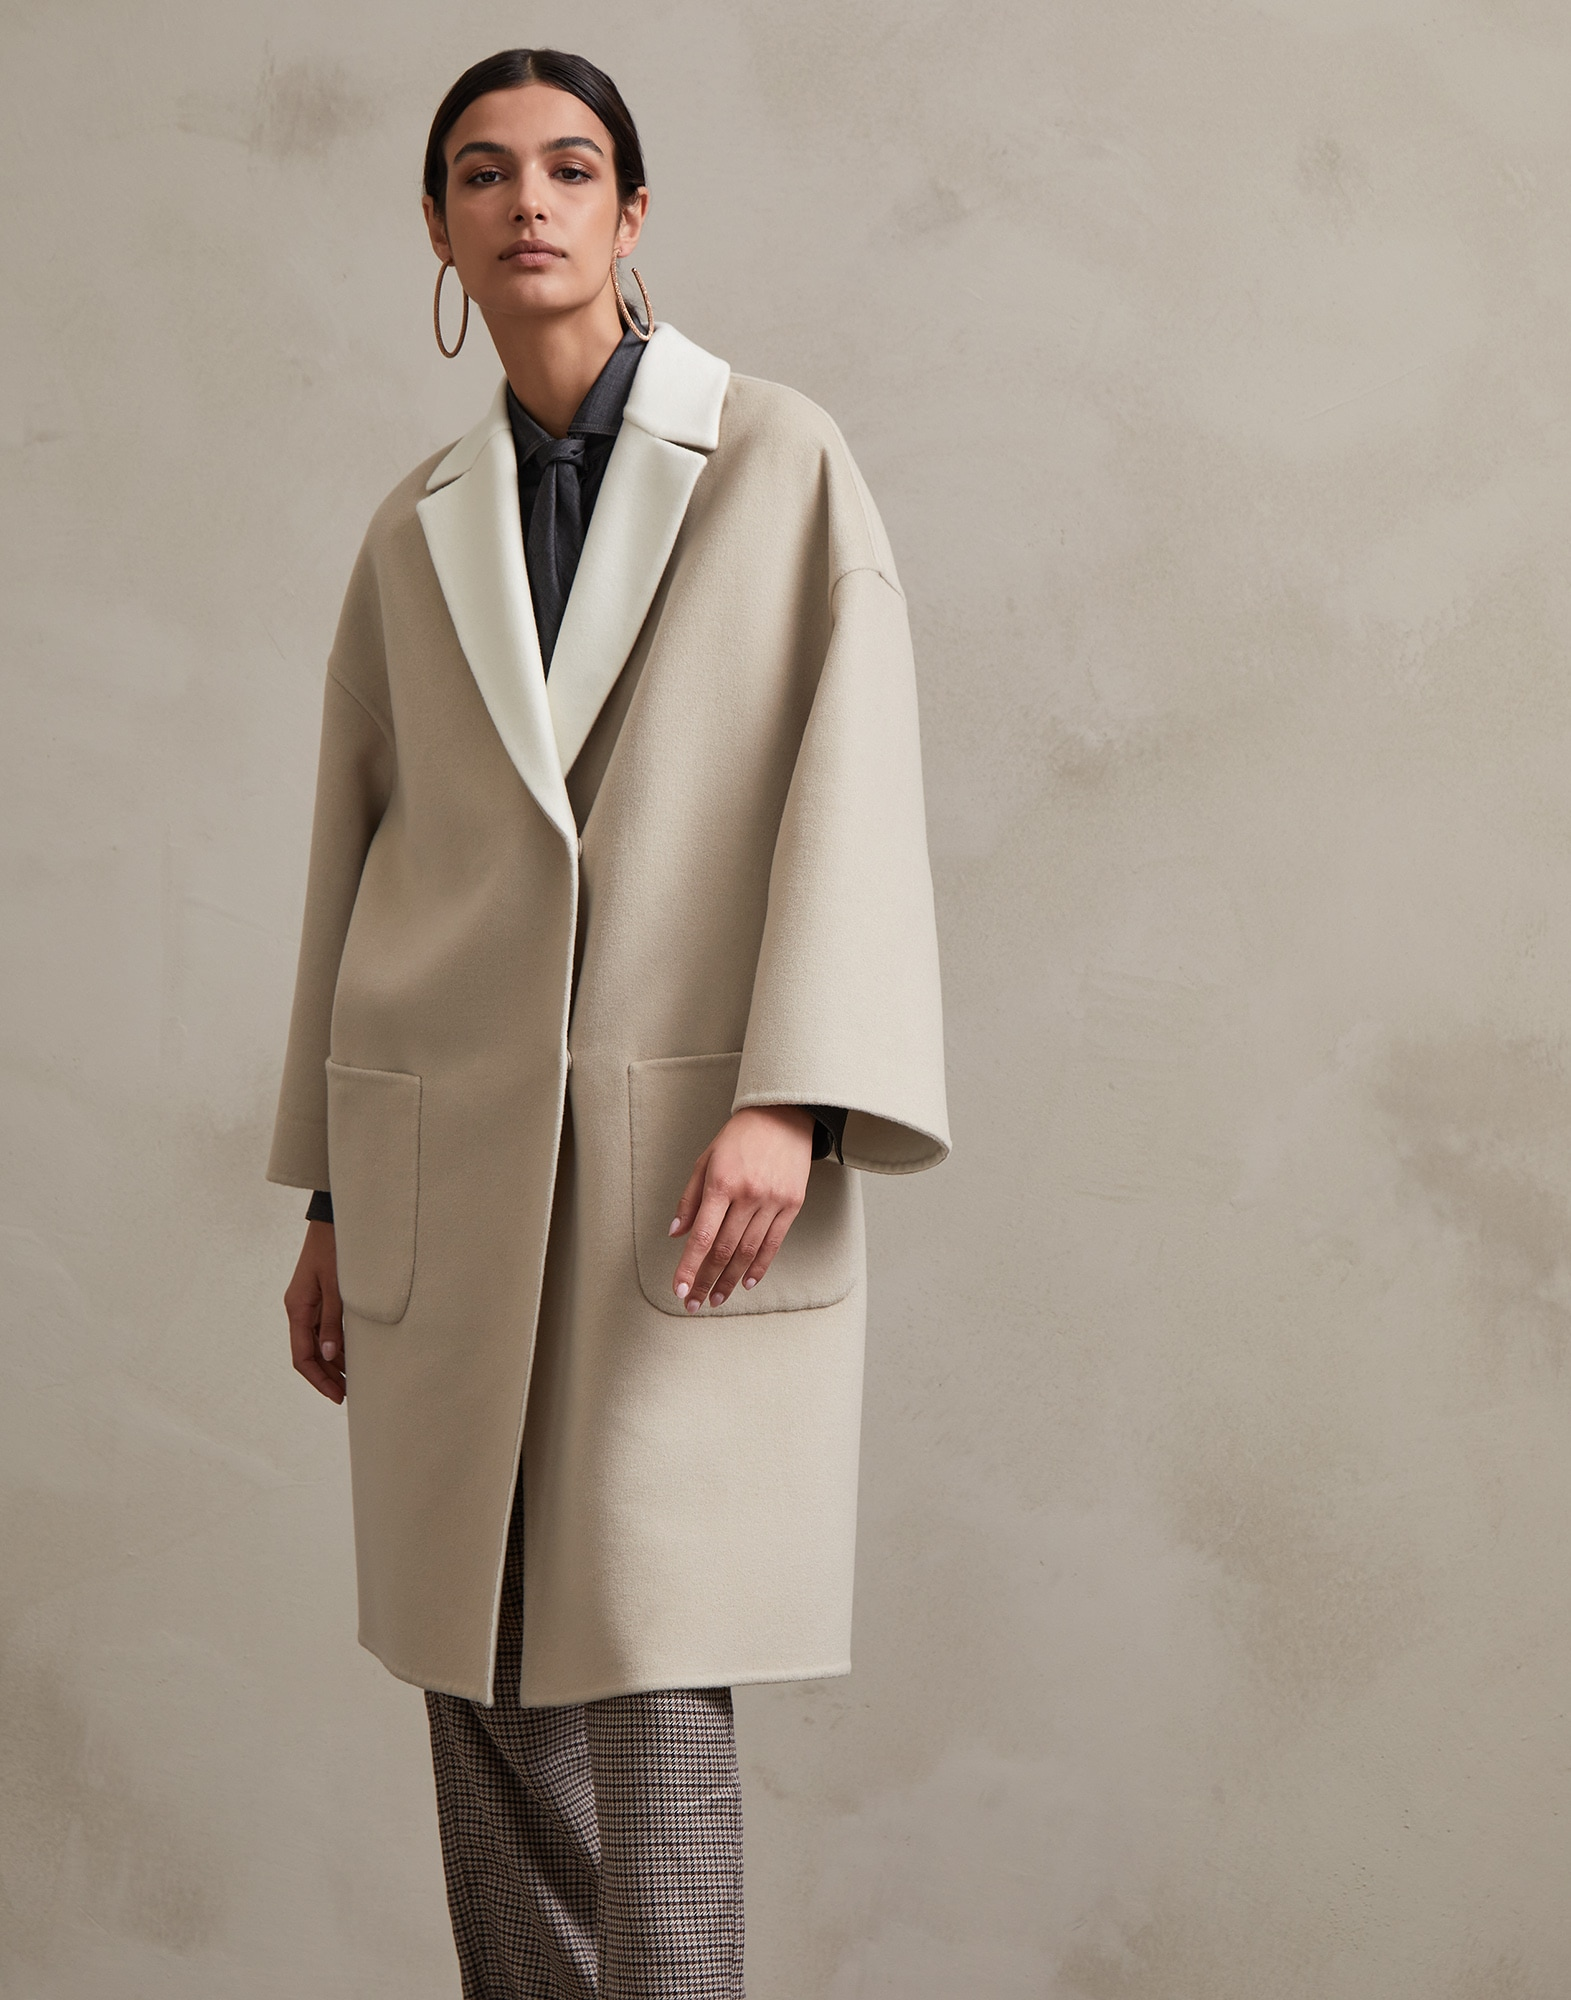 Coat Natural Woman 1 - Brunello Cucinelli